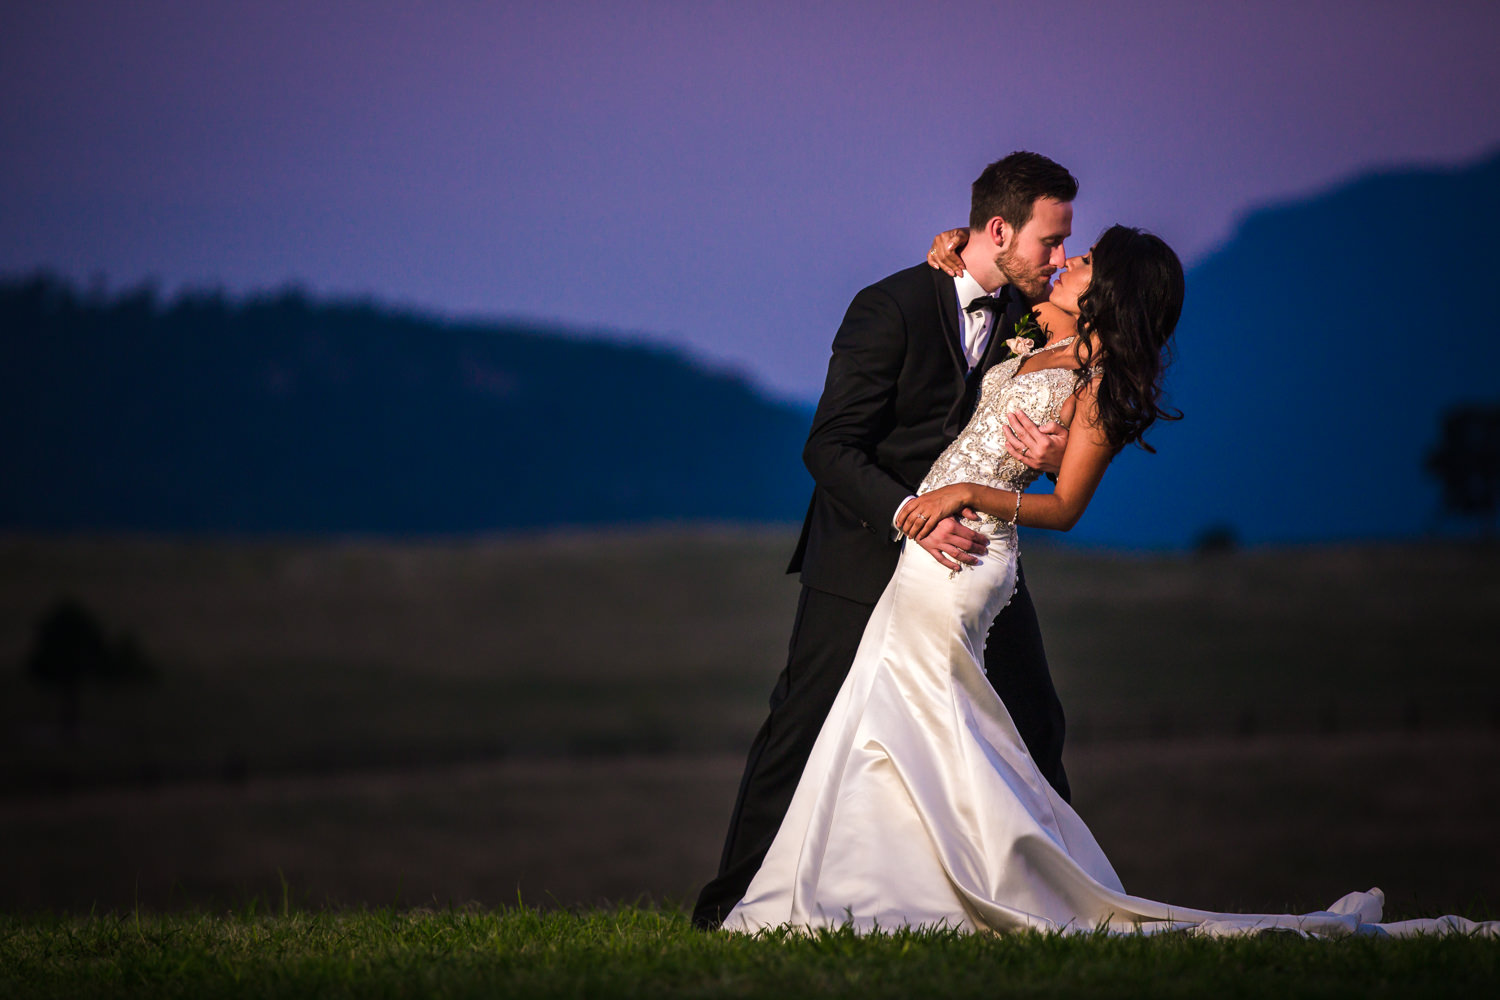 Spruce Mountain Ranch Wedding | Larkspur Colorado wedding photographer | © JMGant Photography | http://www.jmgantphotography.com/